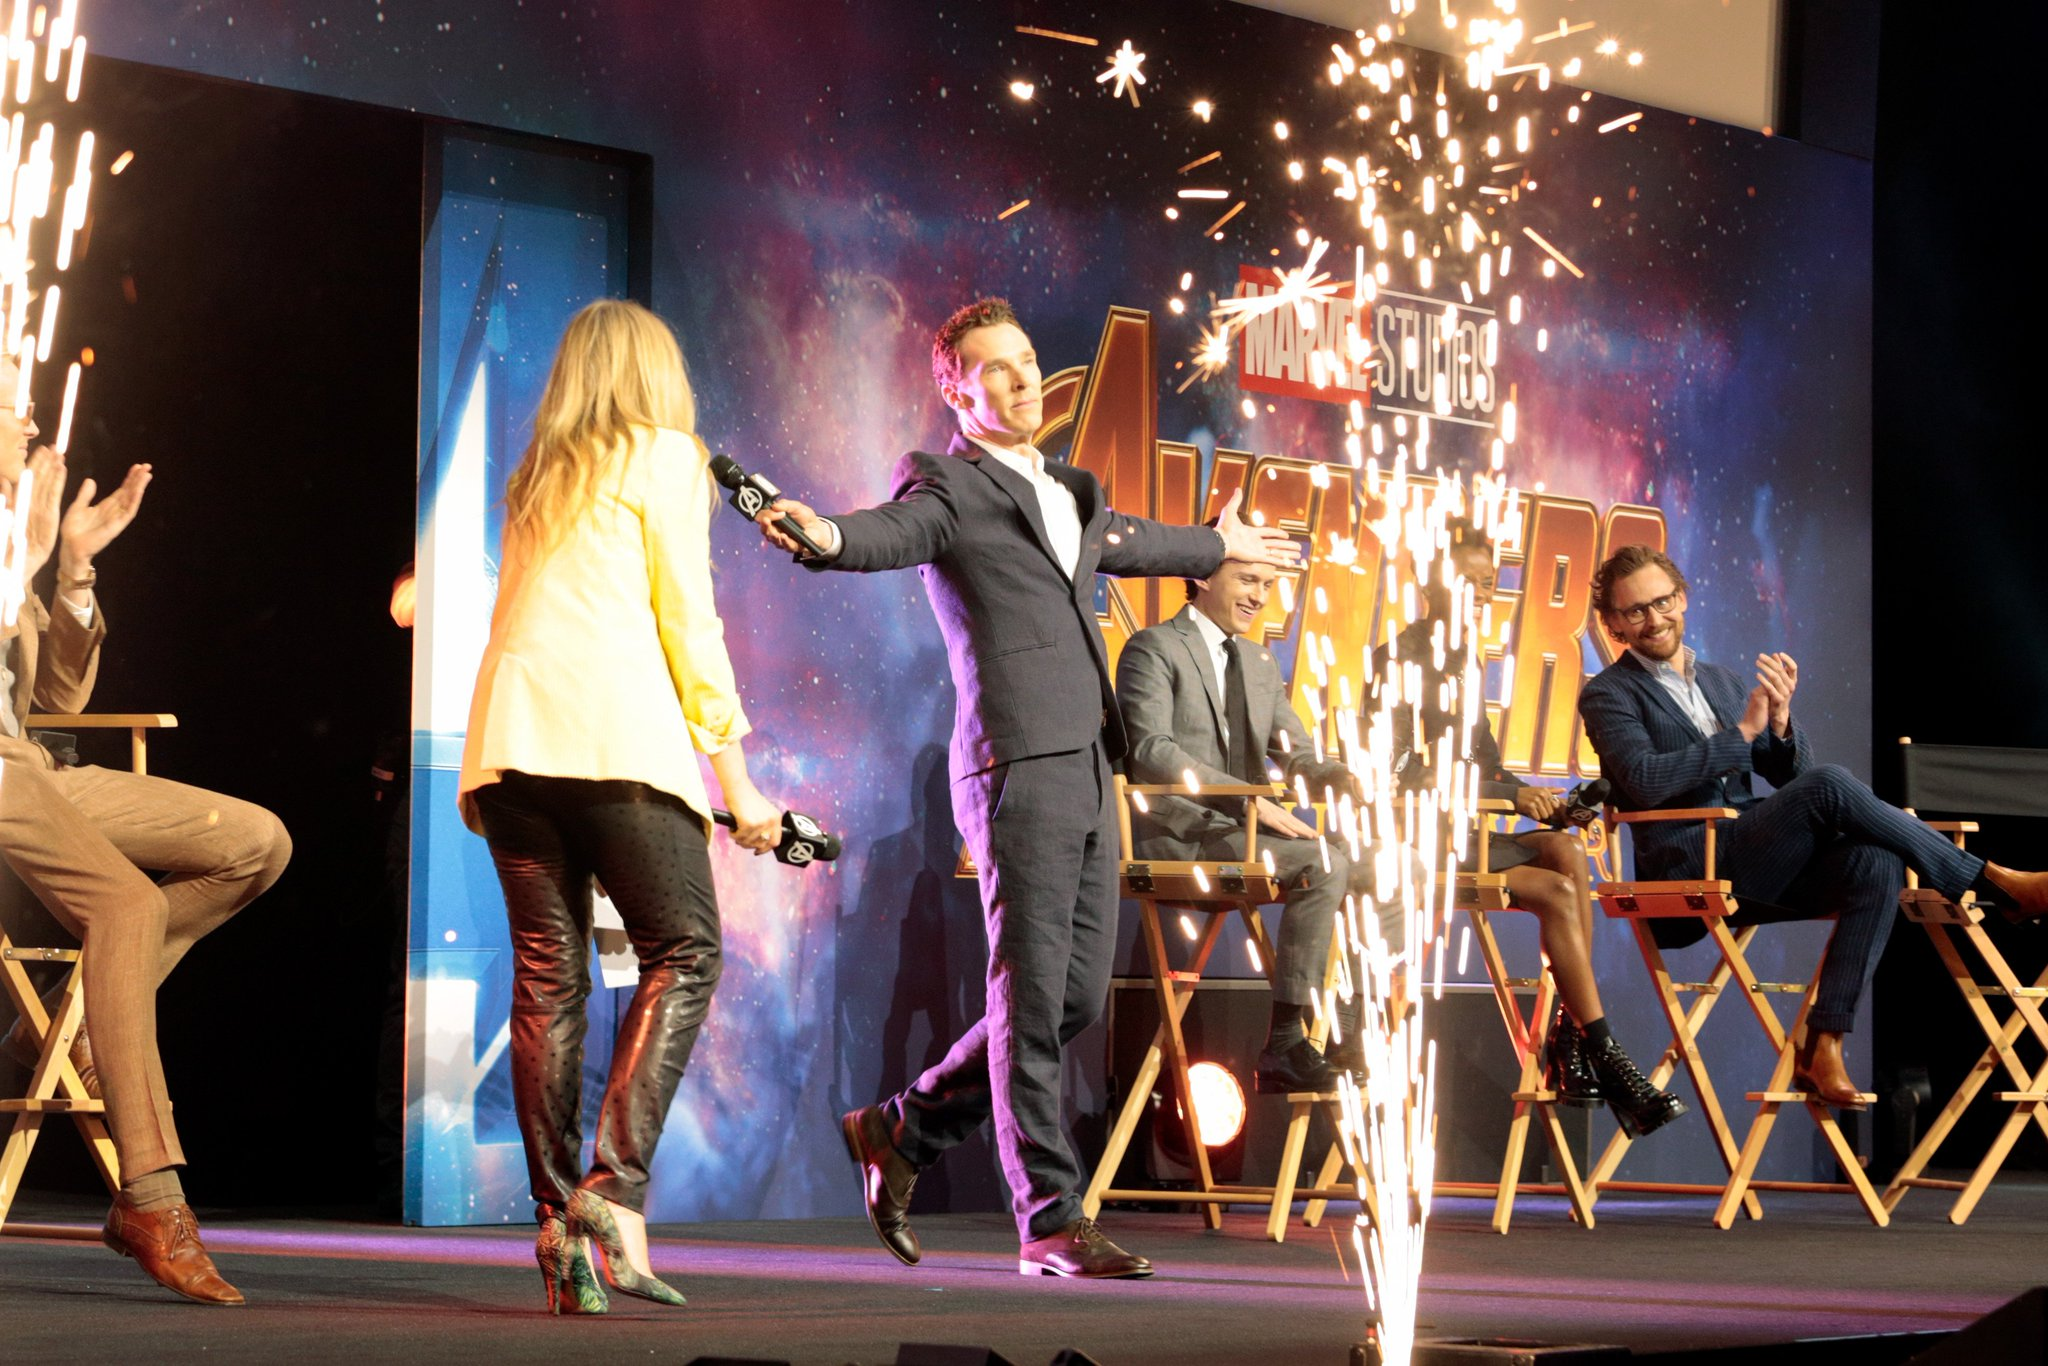 See the photos from the Marvel Studios' @Avengers: #InfinityWar red carpet fan event in London! (3/3) https://t.co/9eUf7Tbfn7